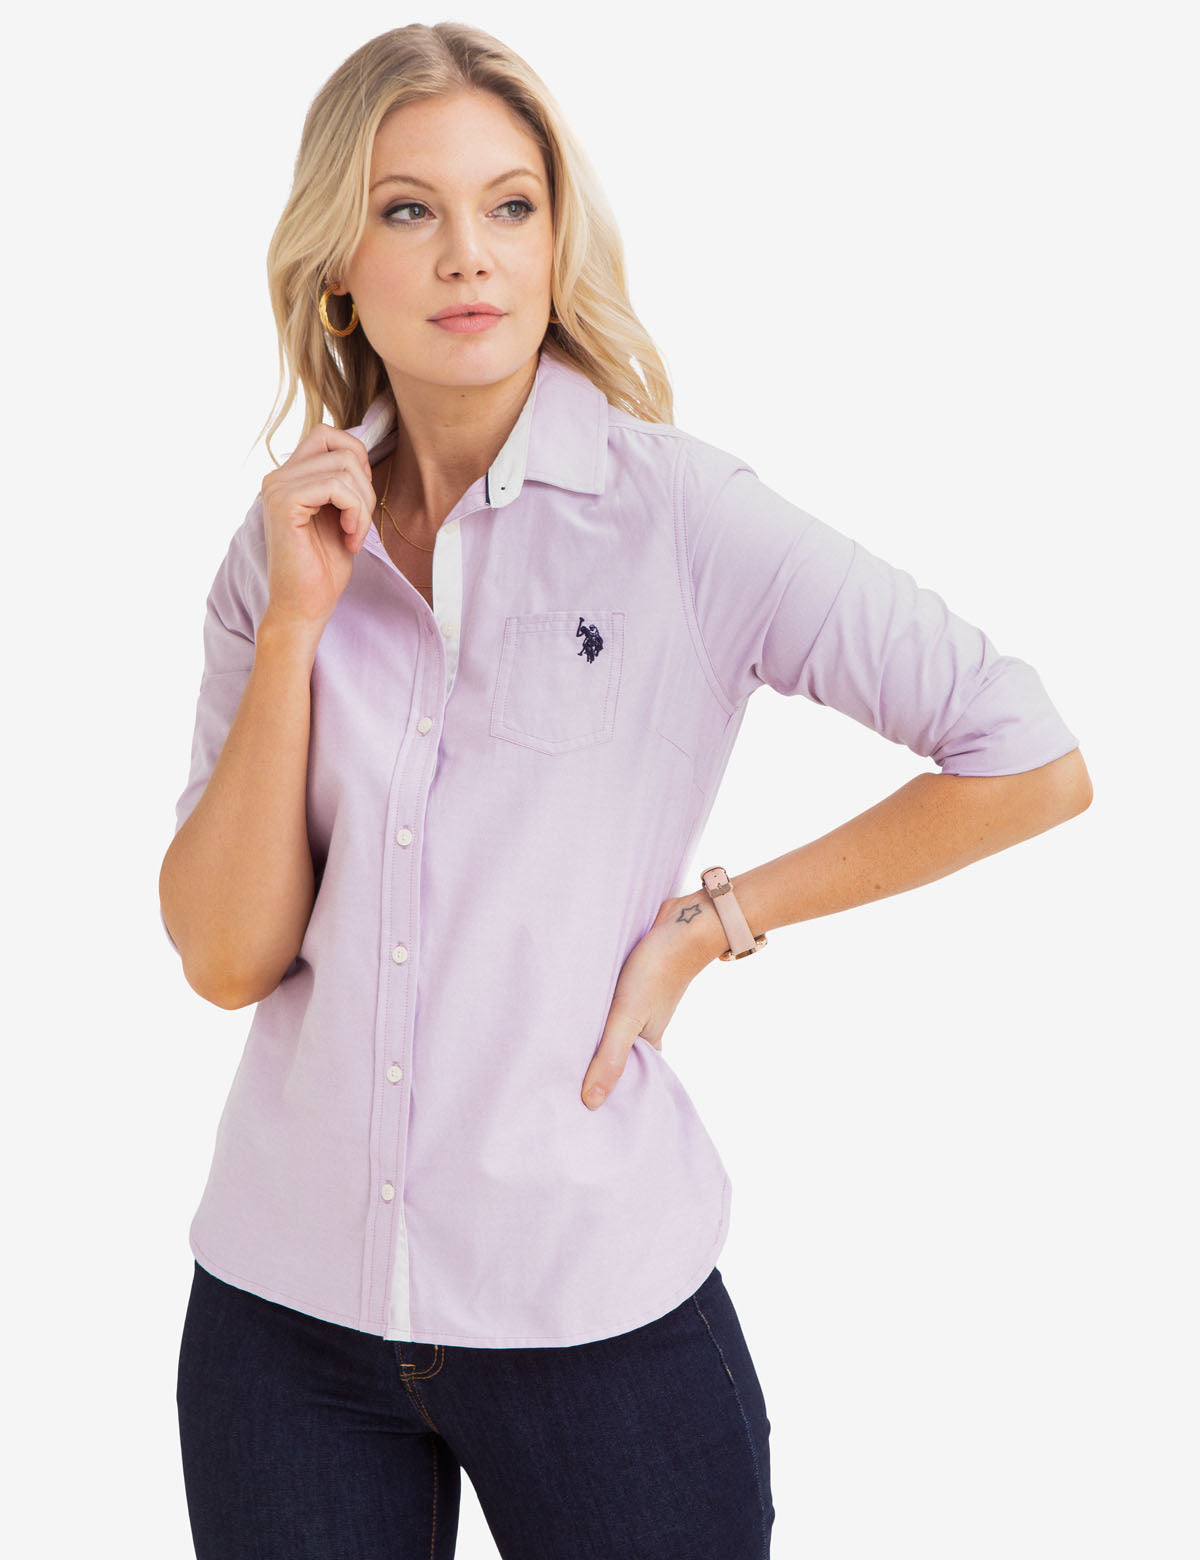 U.S Polo Assn Womens